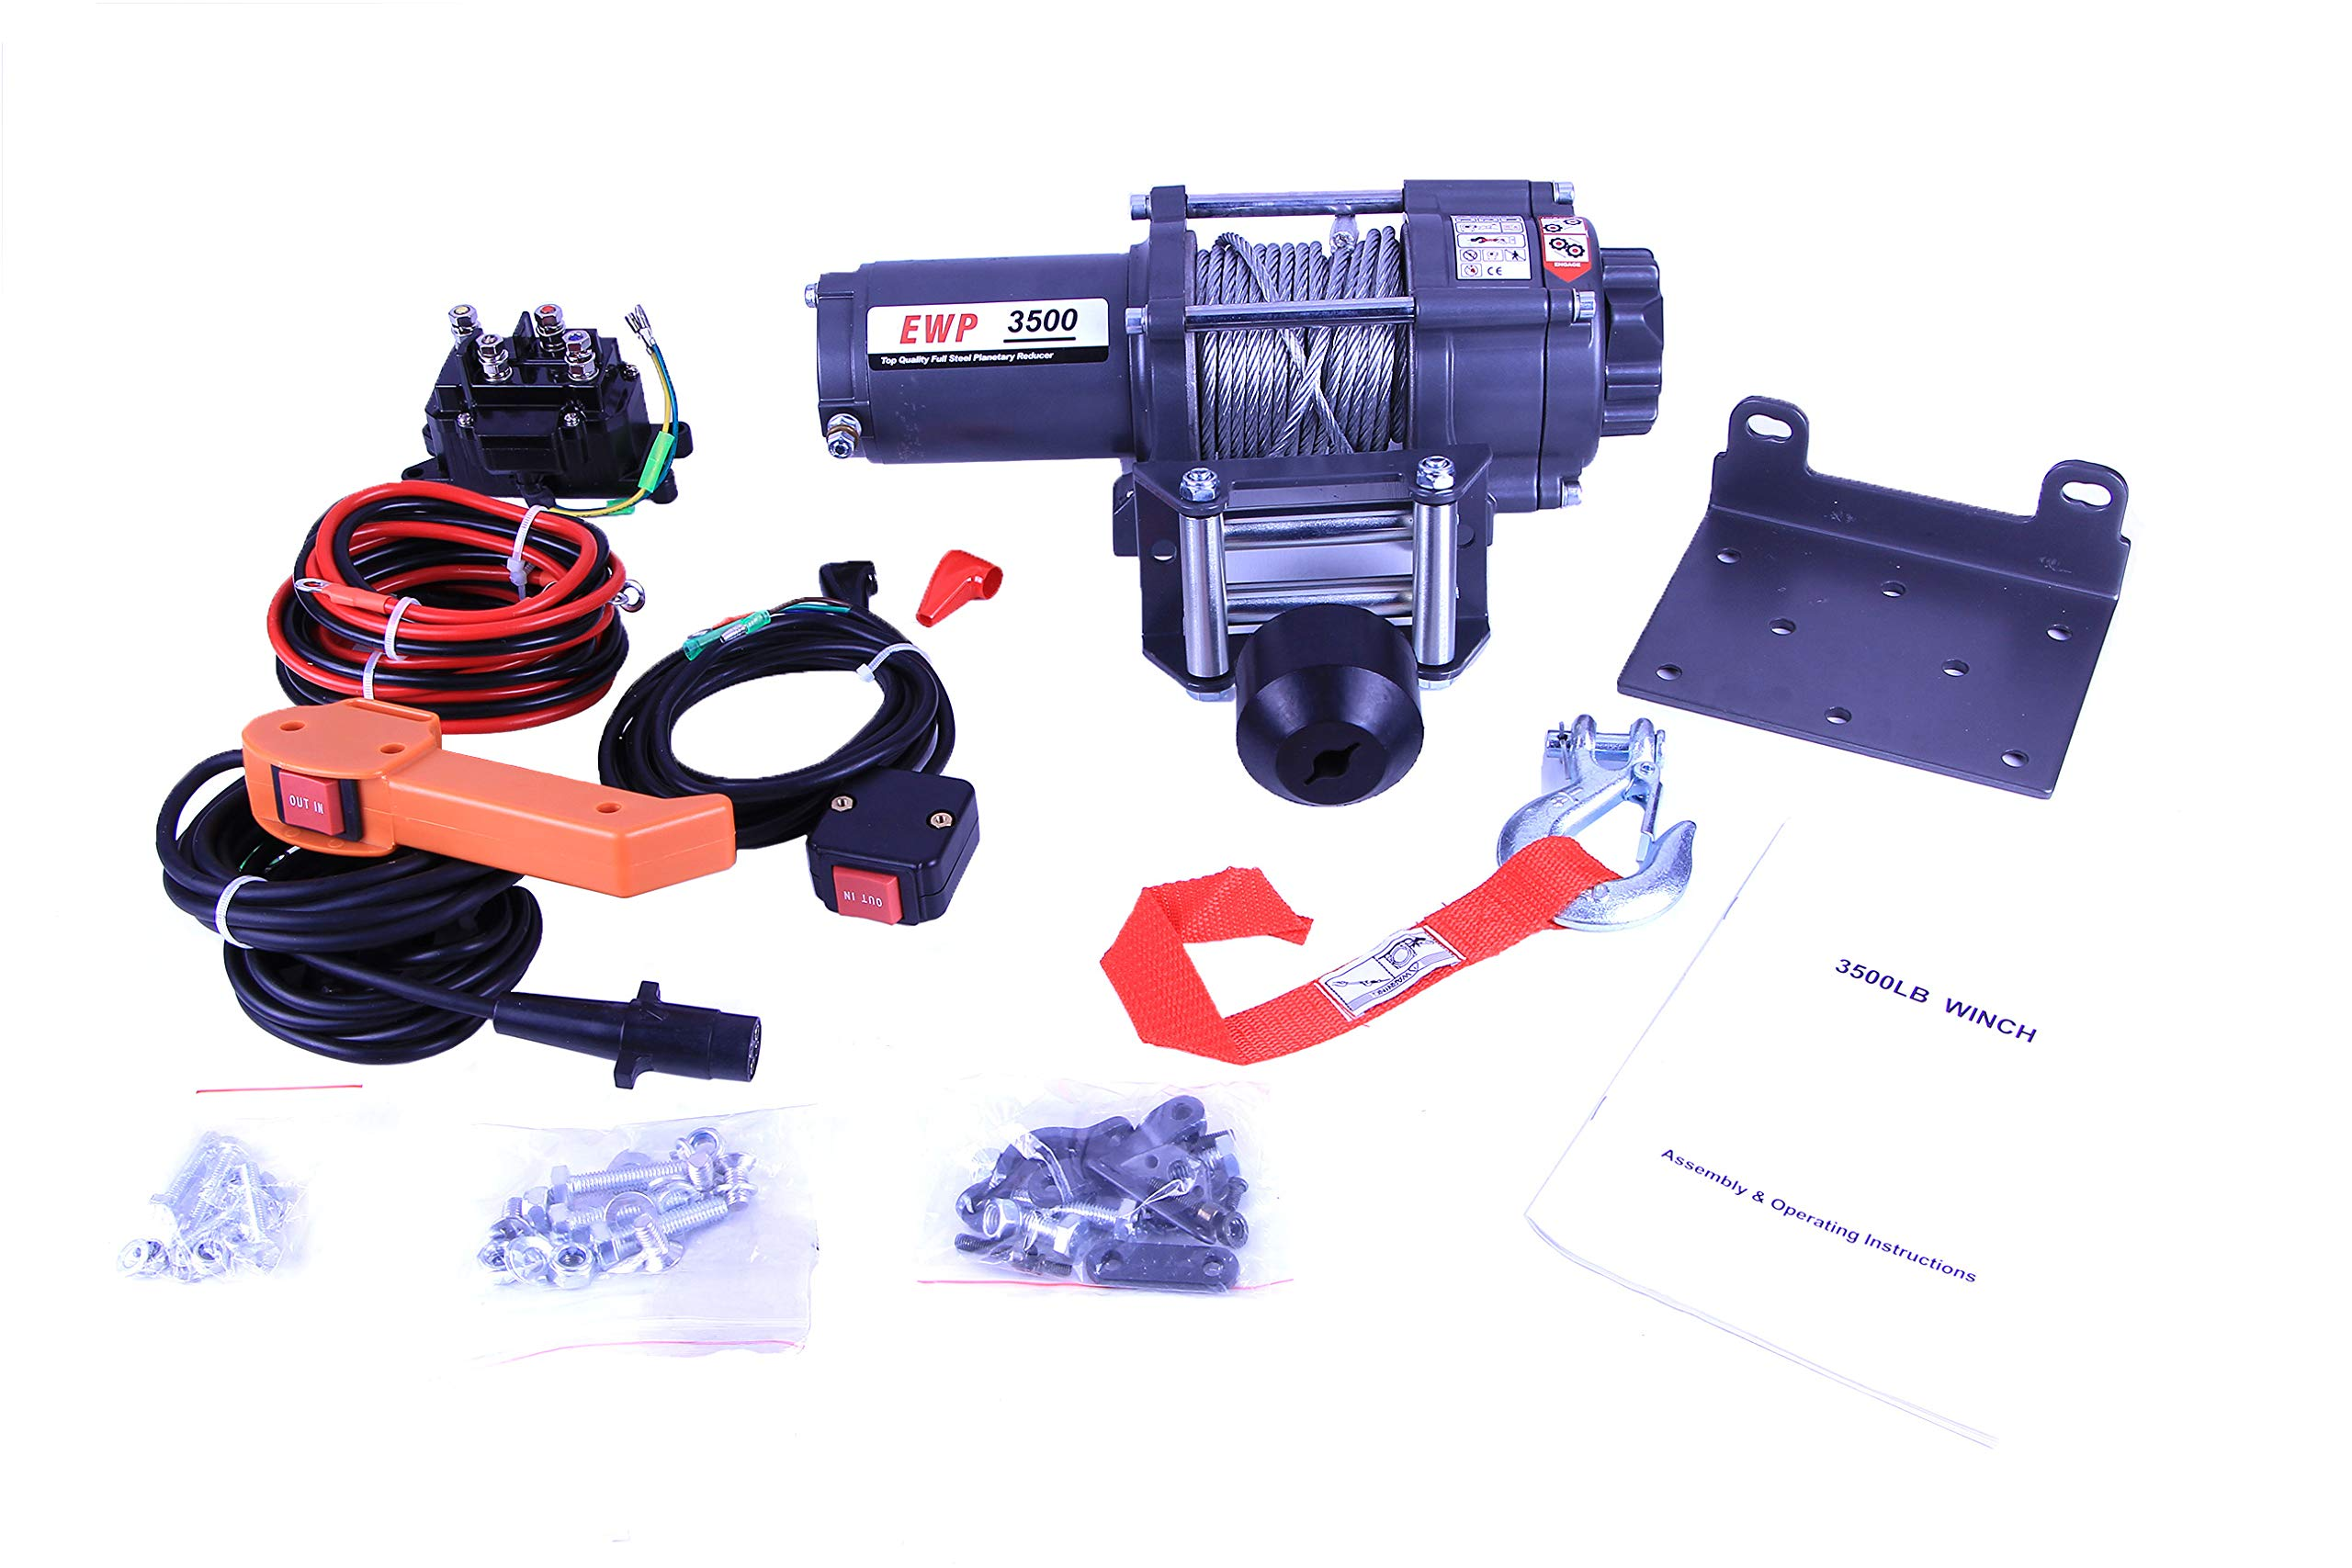 AC-DK 12V 3500lb ATV Winch UTV Winch Electric Winch Set for 4x4 Off Road (3500lb Winch with Cable) by AC-DK (Image #3)